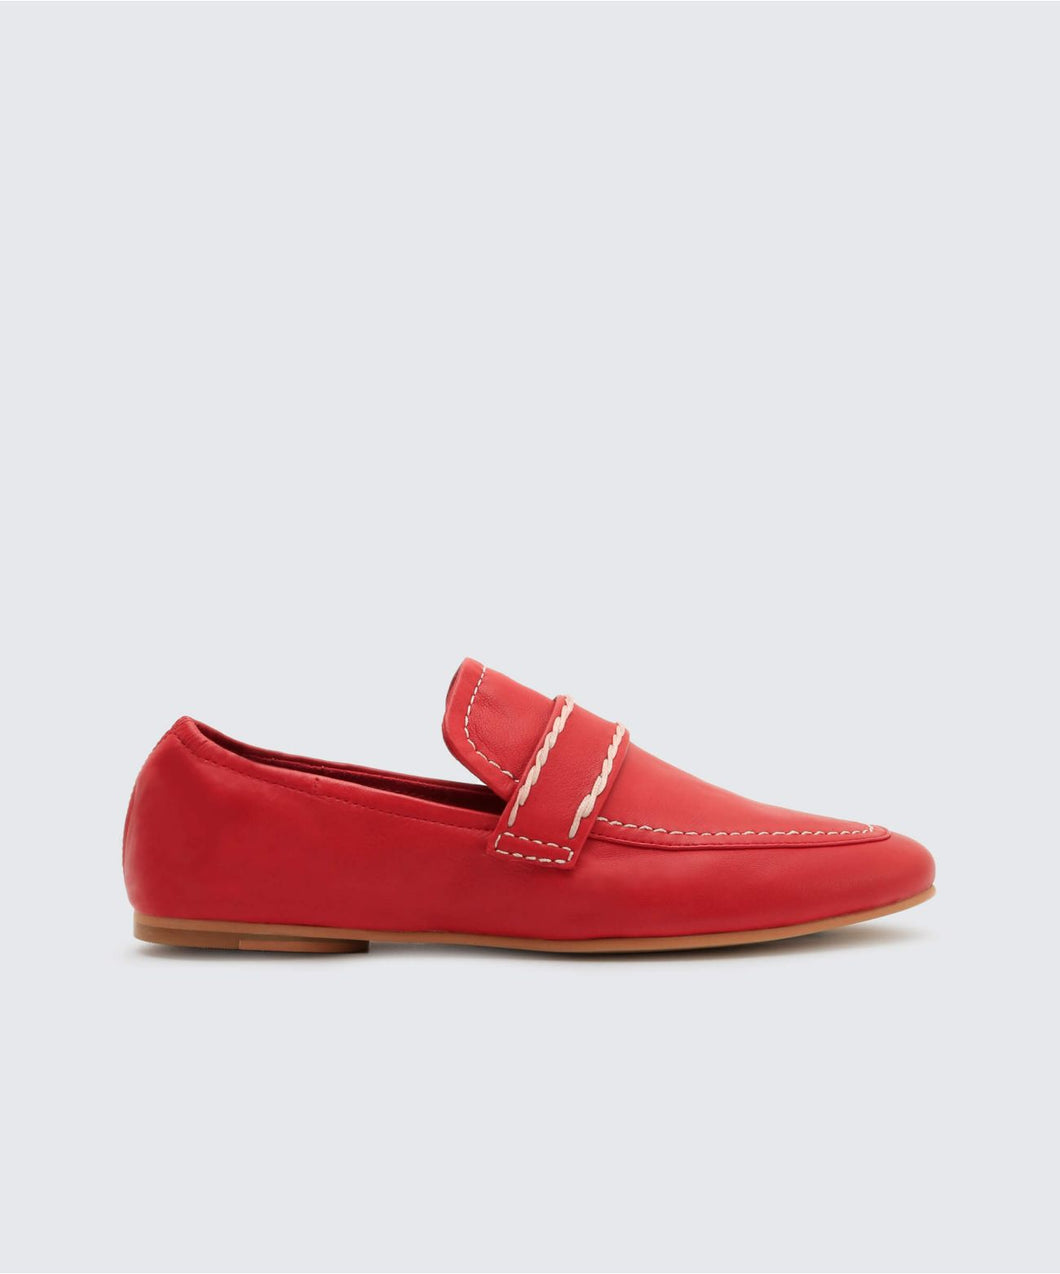 FRASER FLATS IN RED -   Dolce Vita